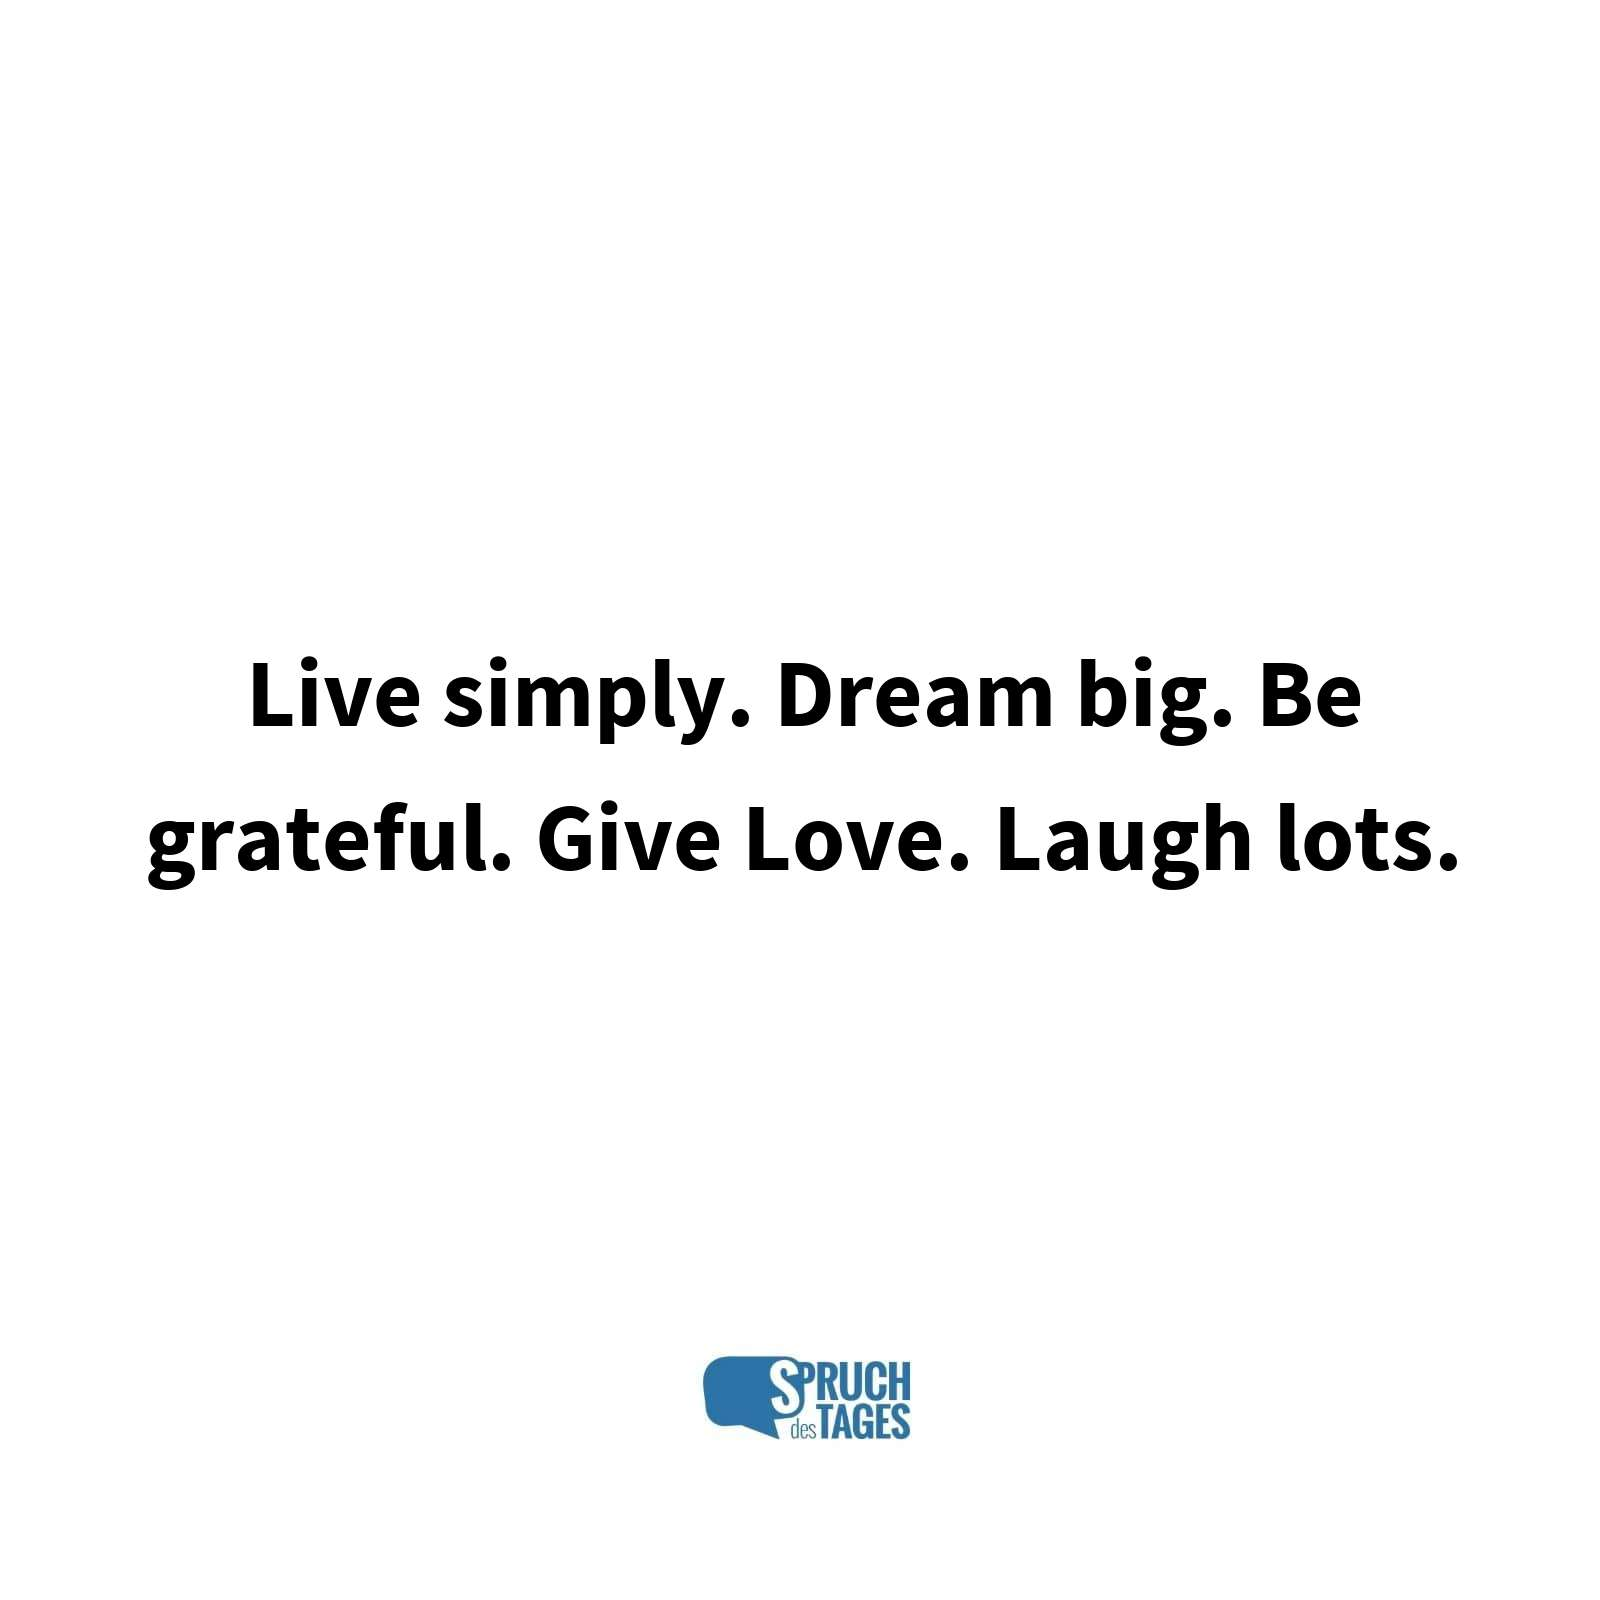 silvester sprüche englisch Live simply. Dream big. Be grateful. Give Love. Laugh lots. silvester sprüche englisch